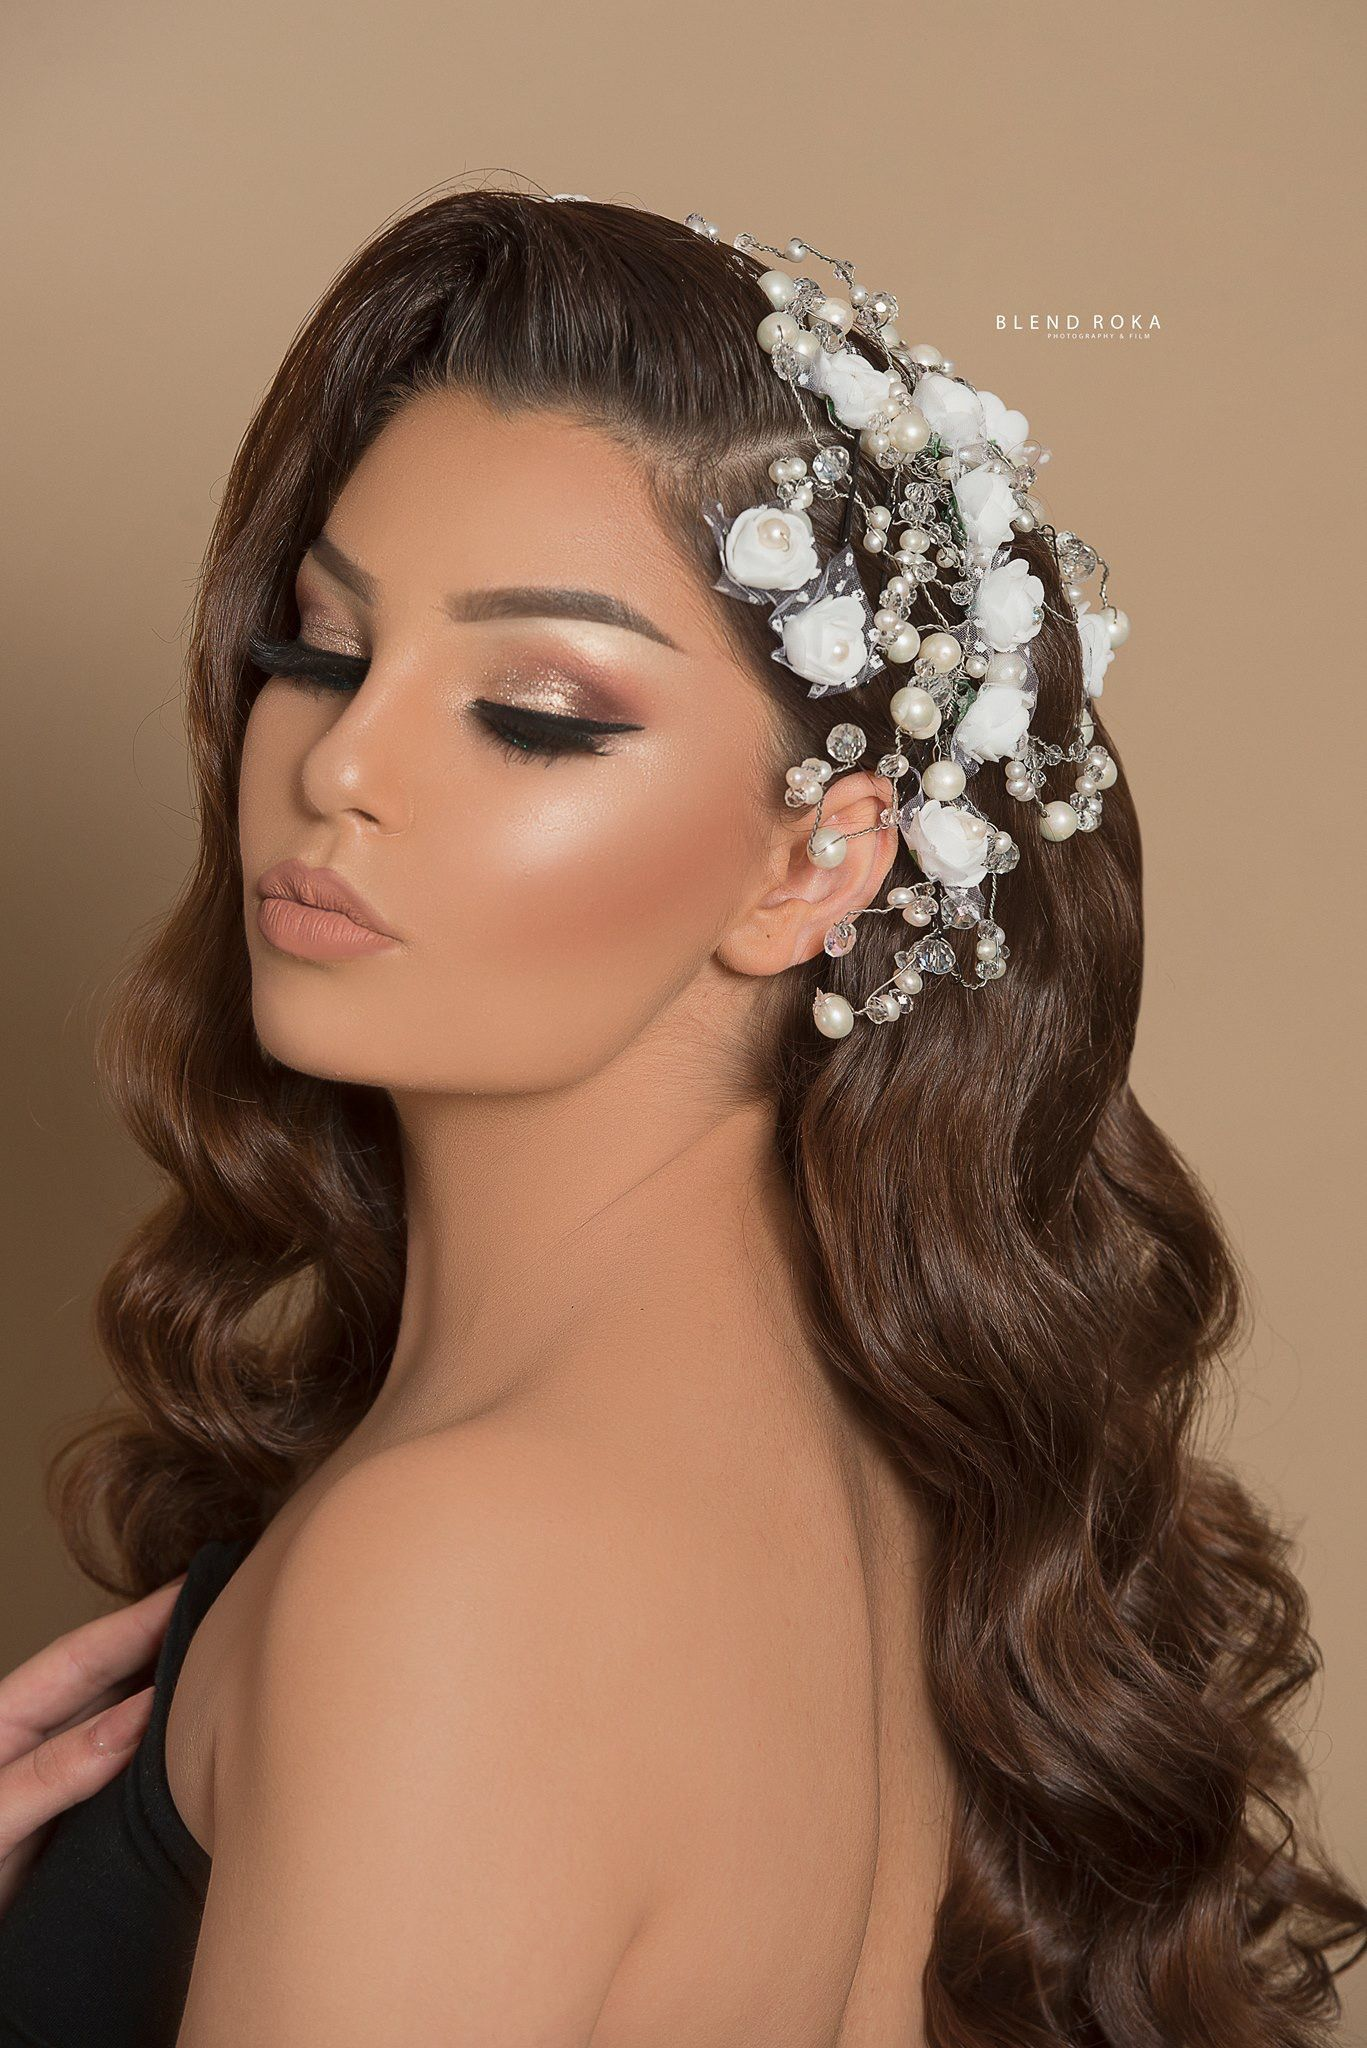 Natural Wedding Day Glam Glam Wedding Makeup Bride Makeup Bridal Hair And Makeup